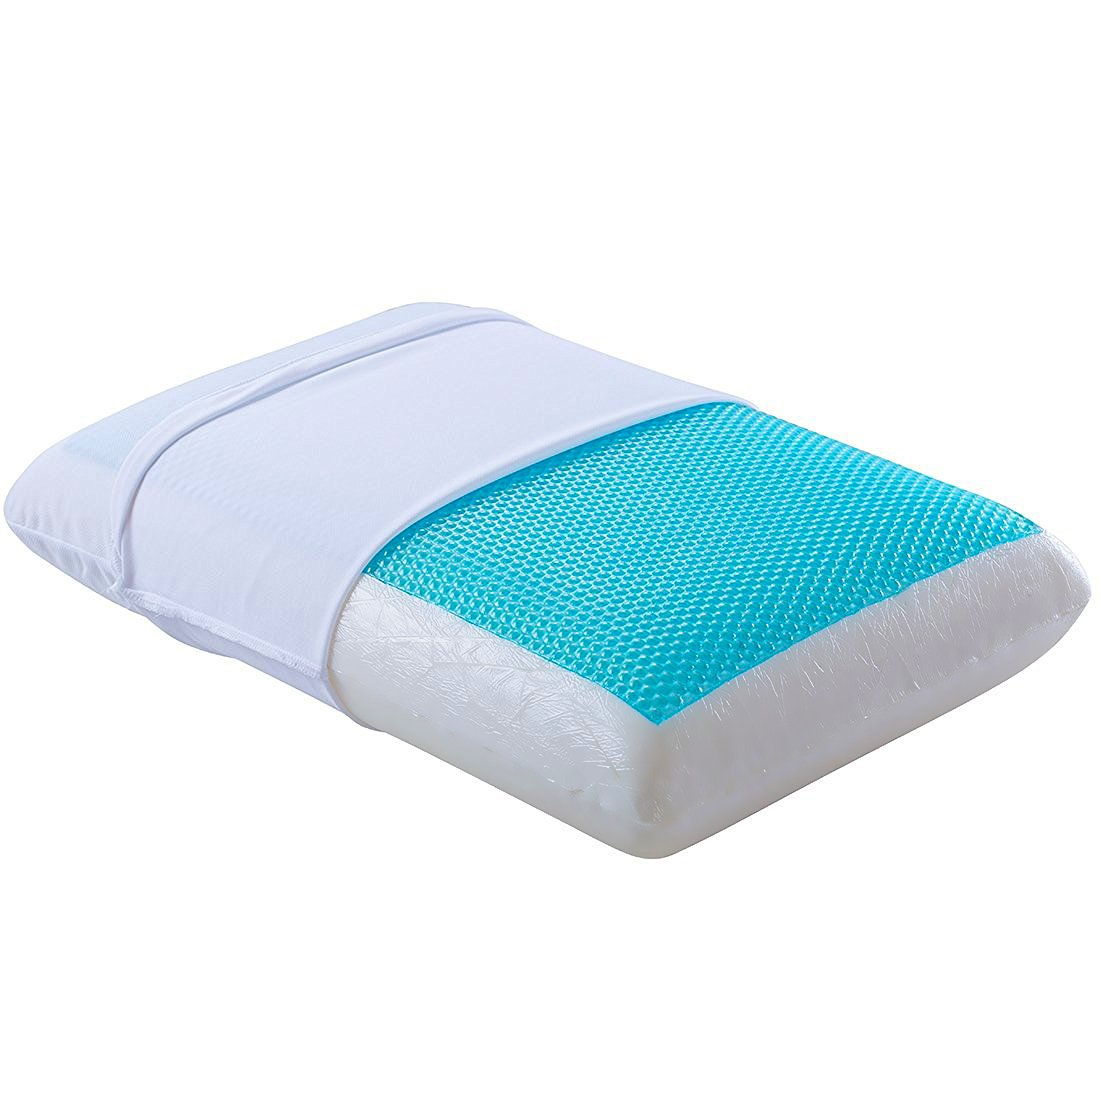 Cr sleep cool gel memory foam pillow for all sleepers for Best cooling body pillow